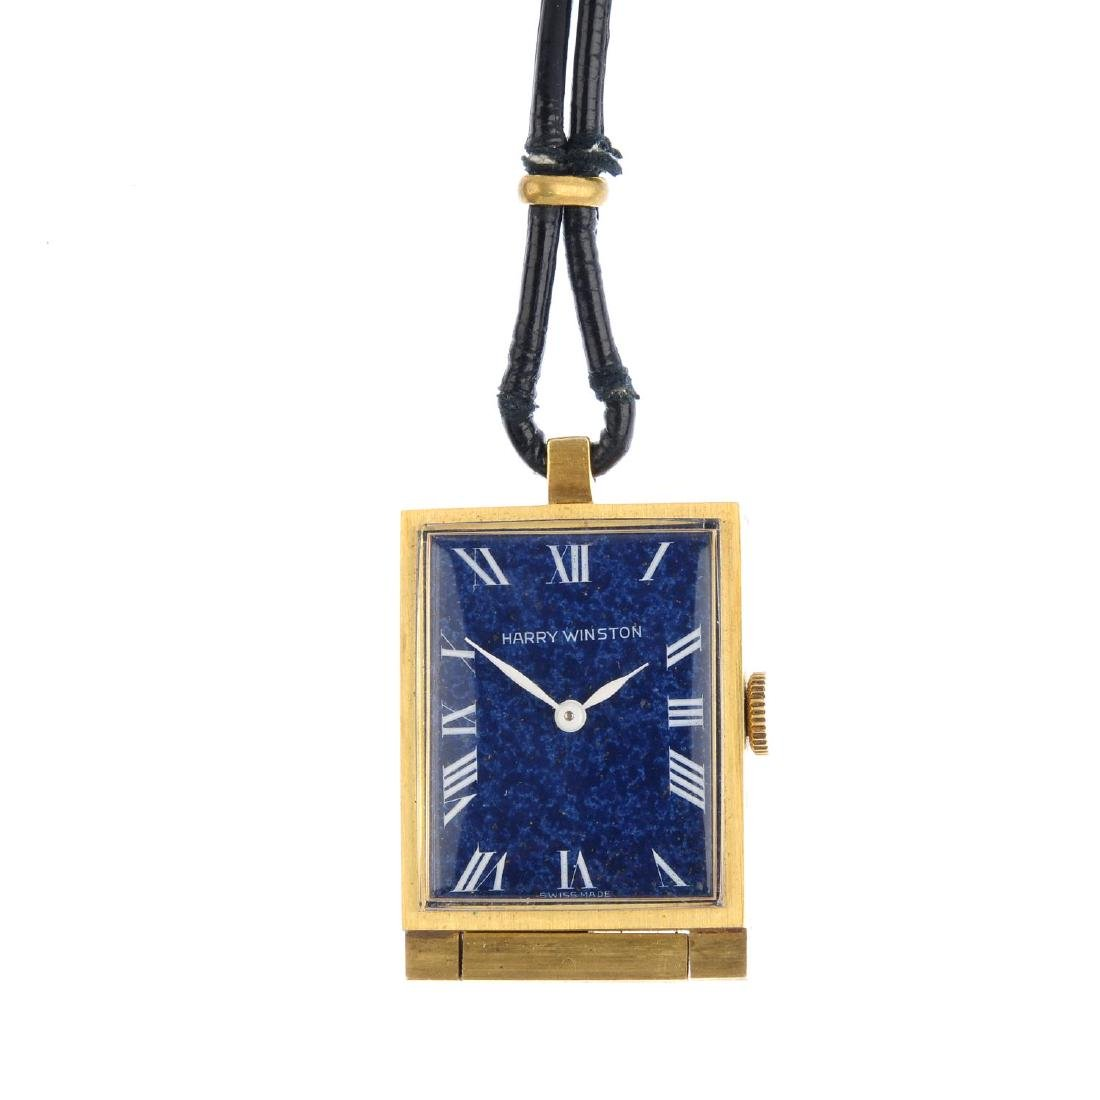 HARRY WINSTON - a mid 20th century travel watch. Of